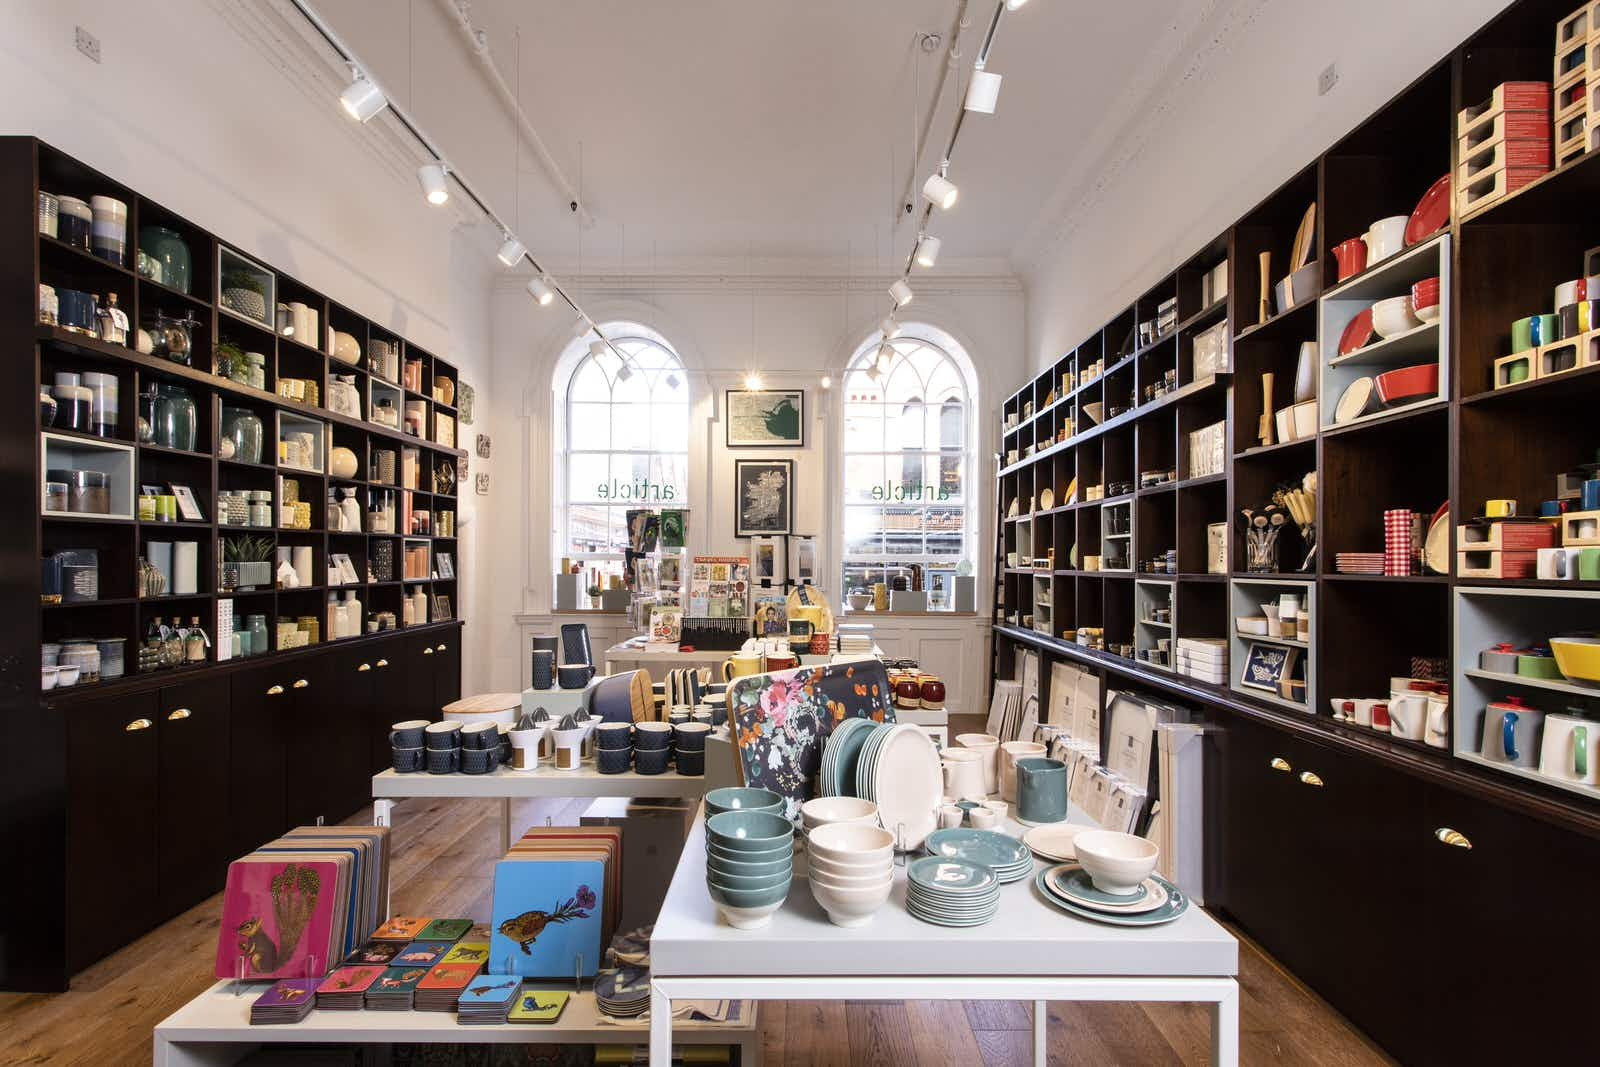 Ditch the Guinness trinkets and pick up something unique in Dublin's independent shops © Sean and Yvette